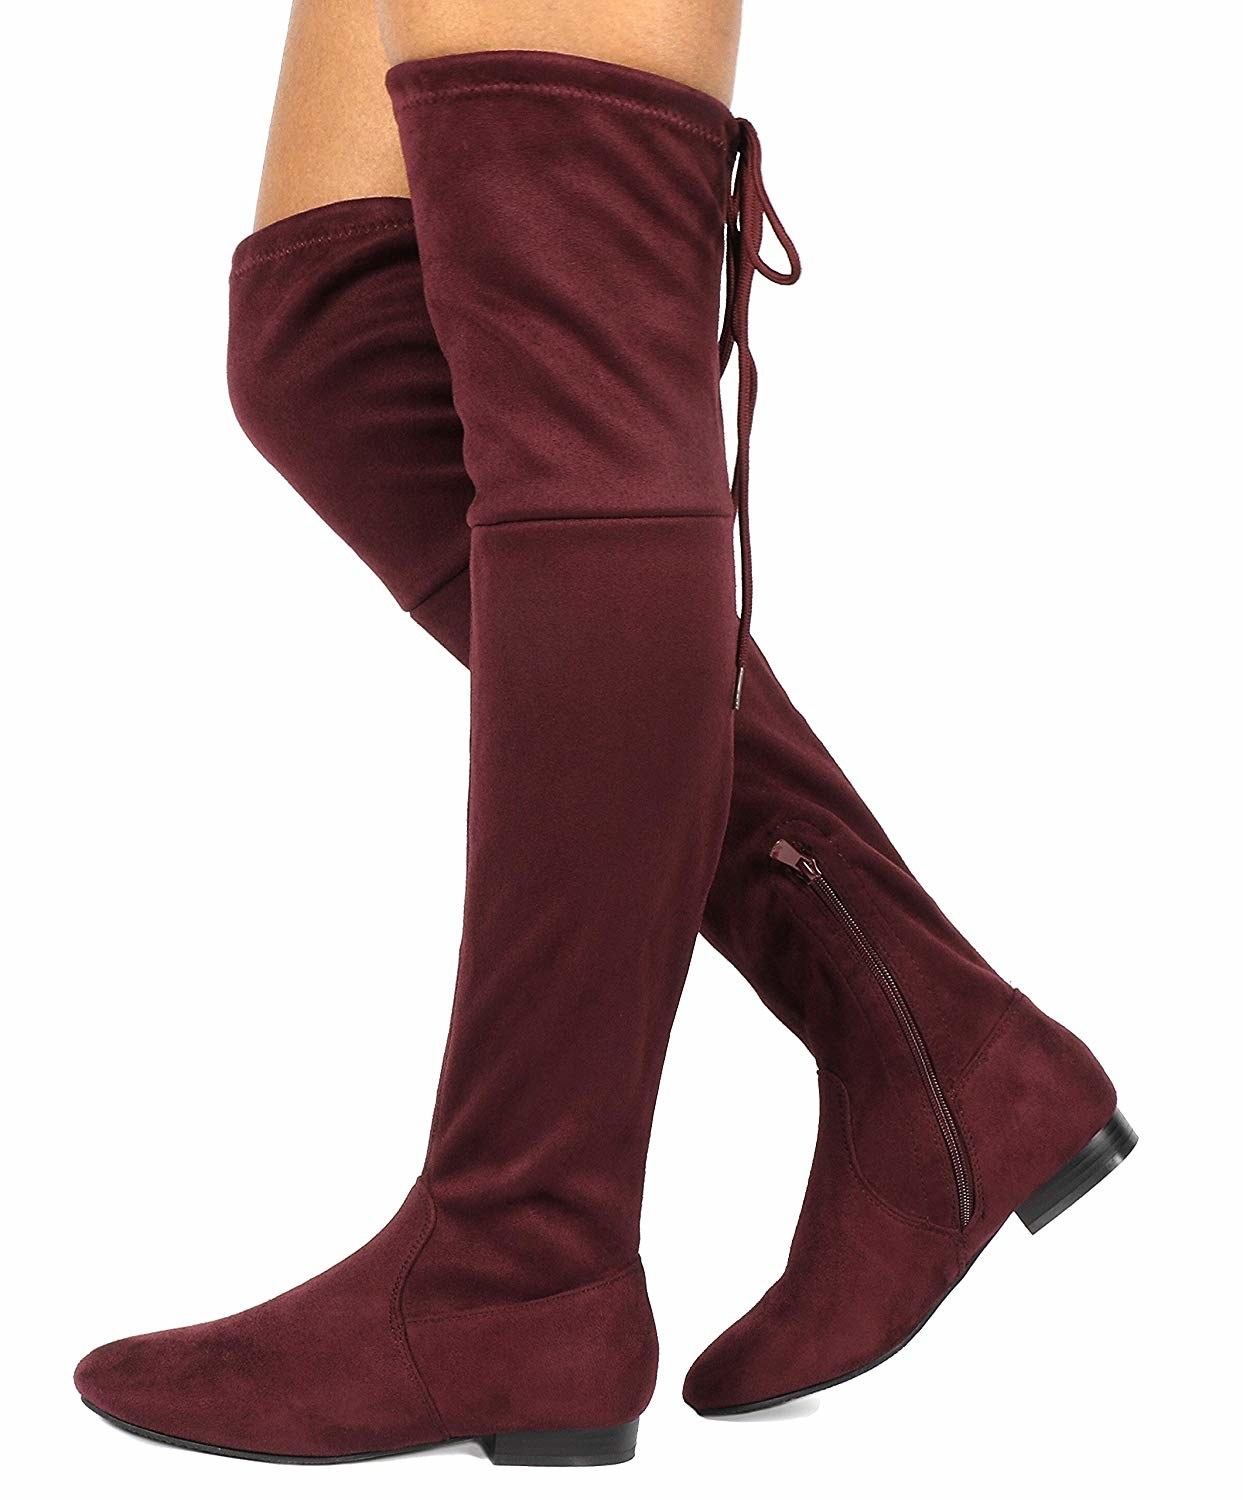 0e338af5f5a Over-the-knee boots you might be tempted to wear every single day. Should  you  Absolutely. It s your life. Live your truth.